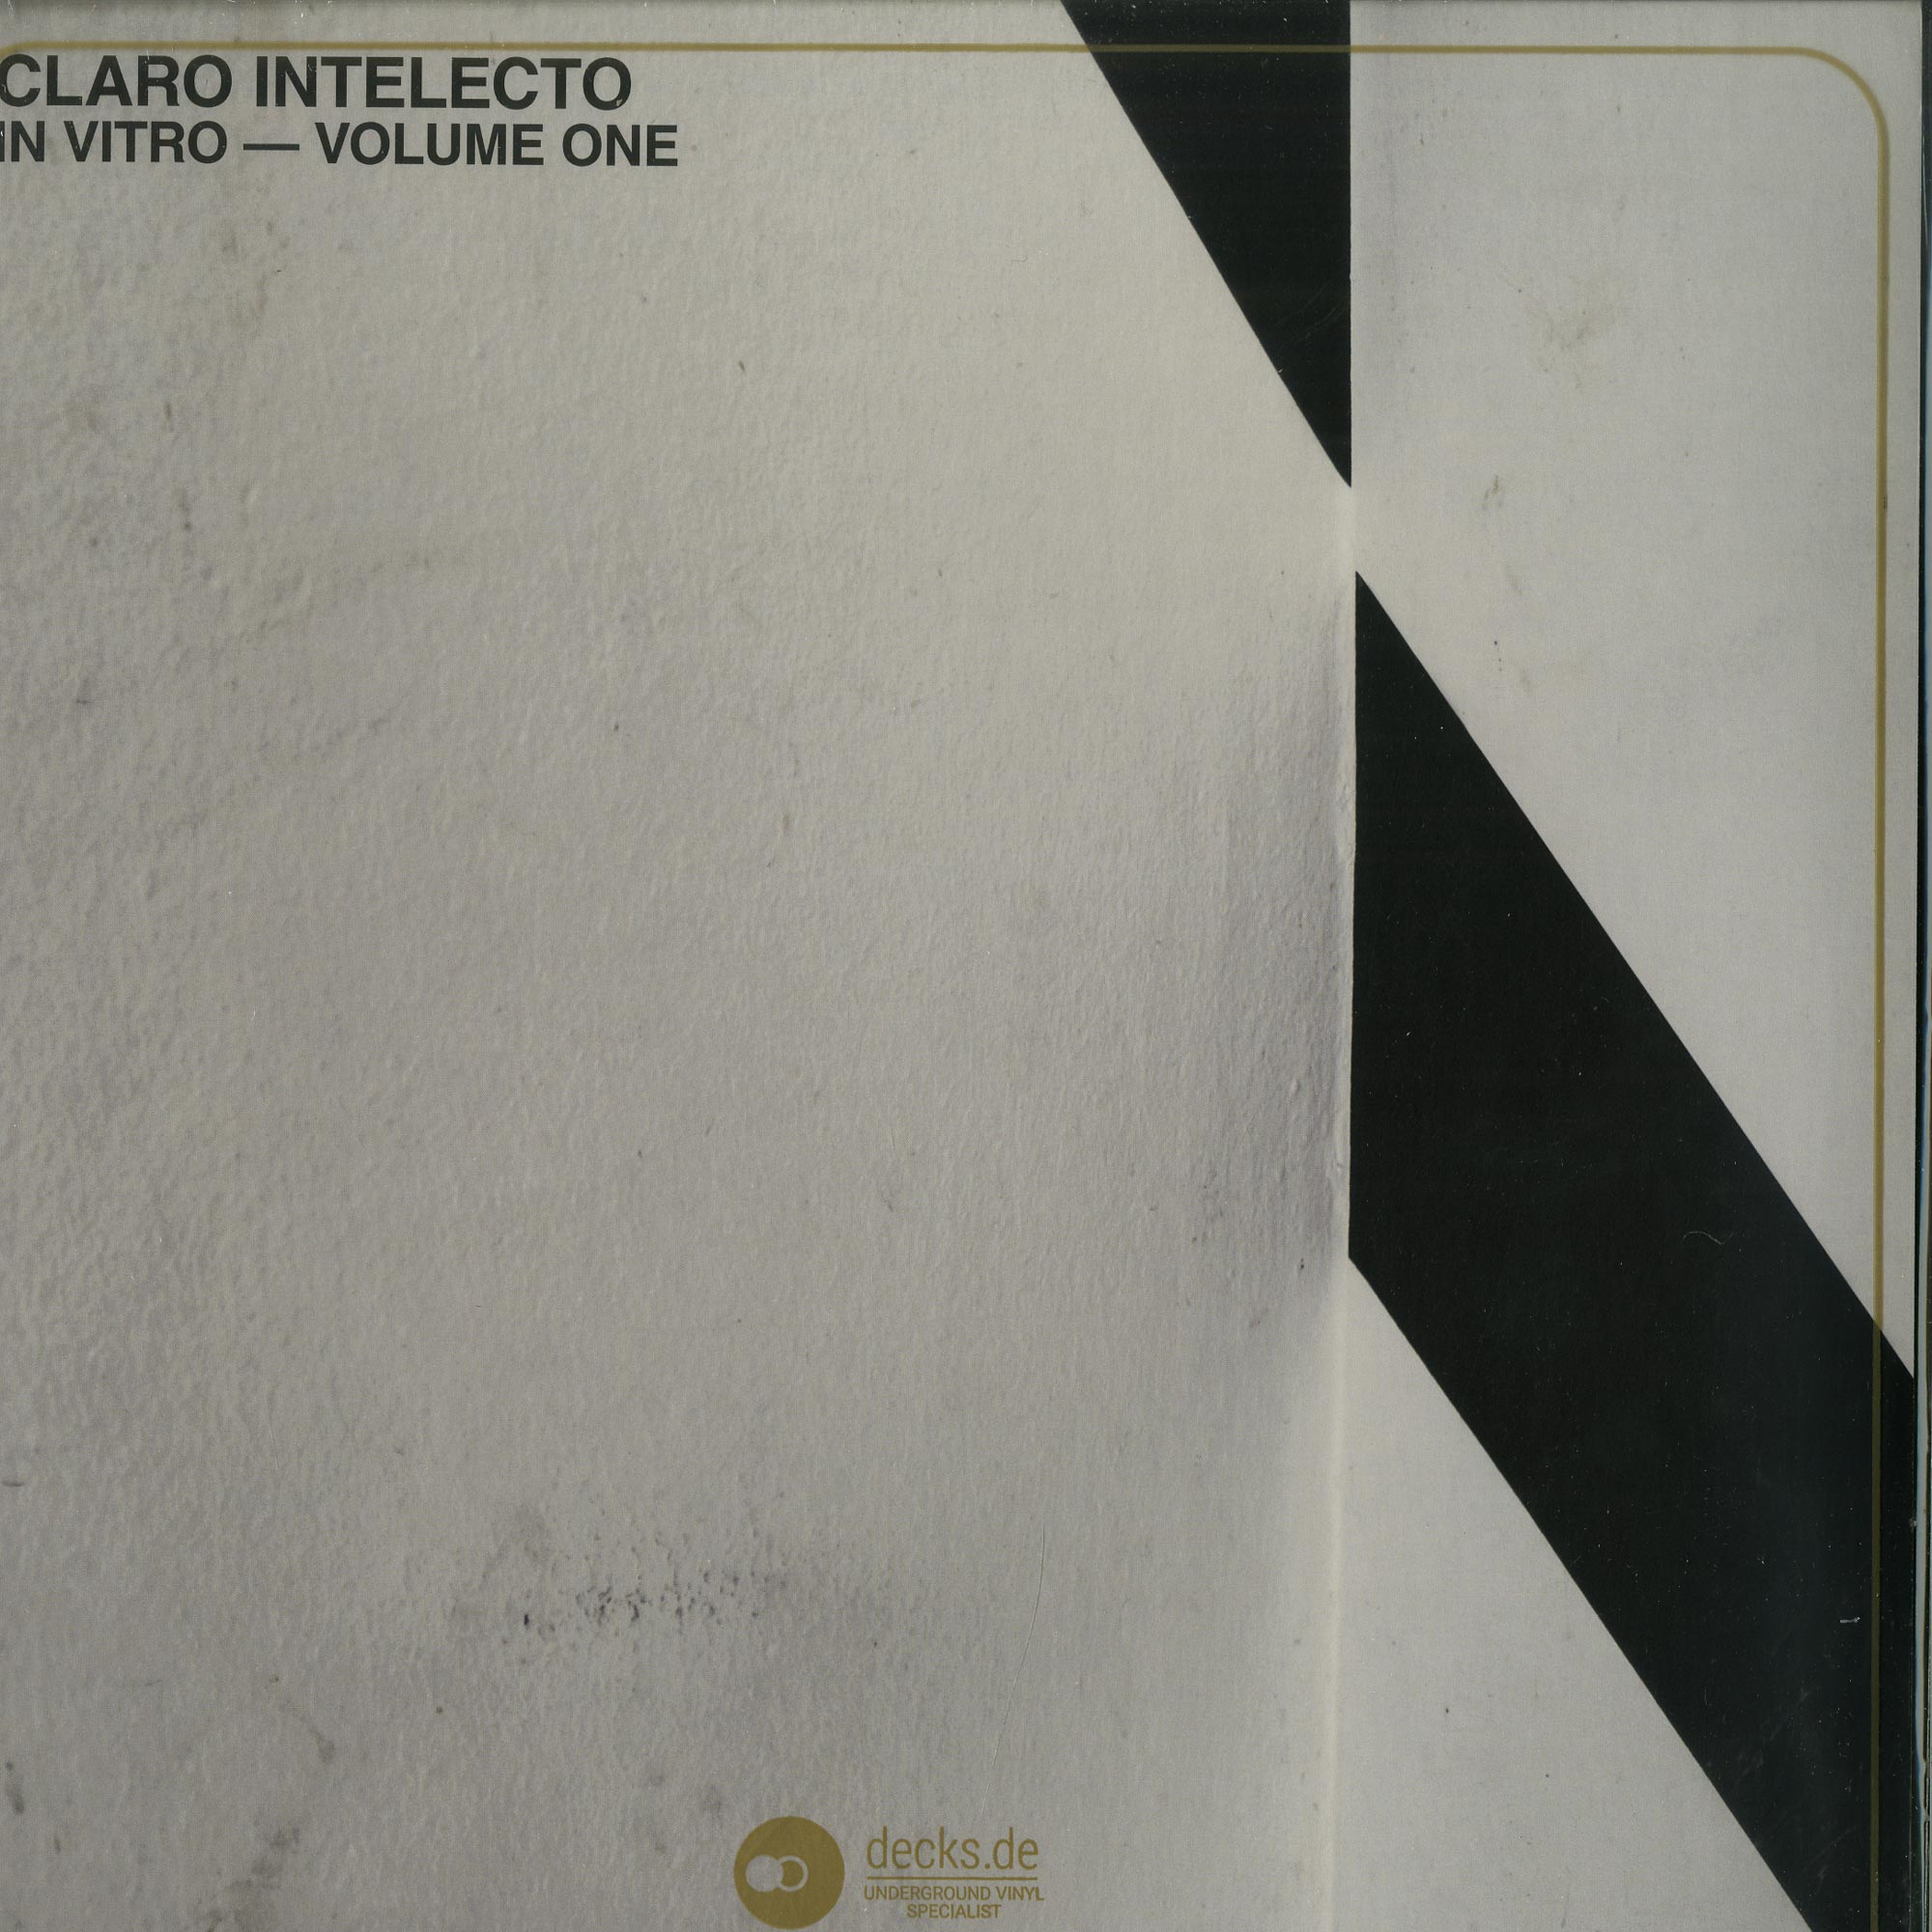 Claro Intelecto - IN VITRO VOLUME ONE